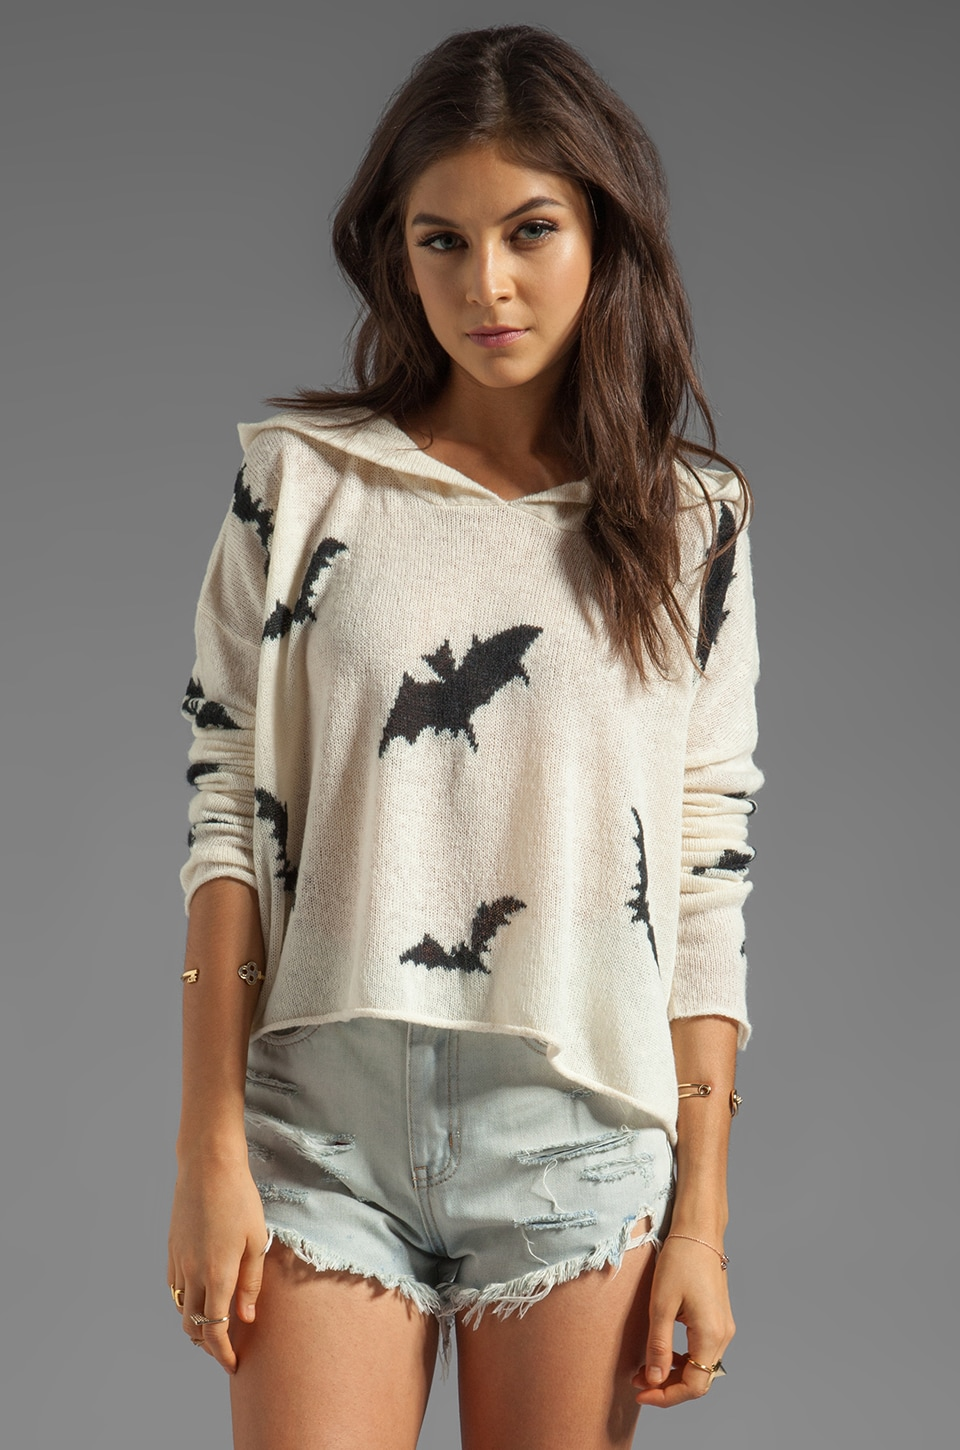 Wildfox Couture White Label Bats Hooded Billy Sweater in Champagne